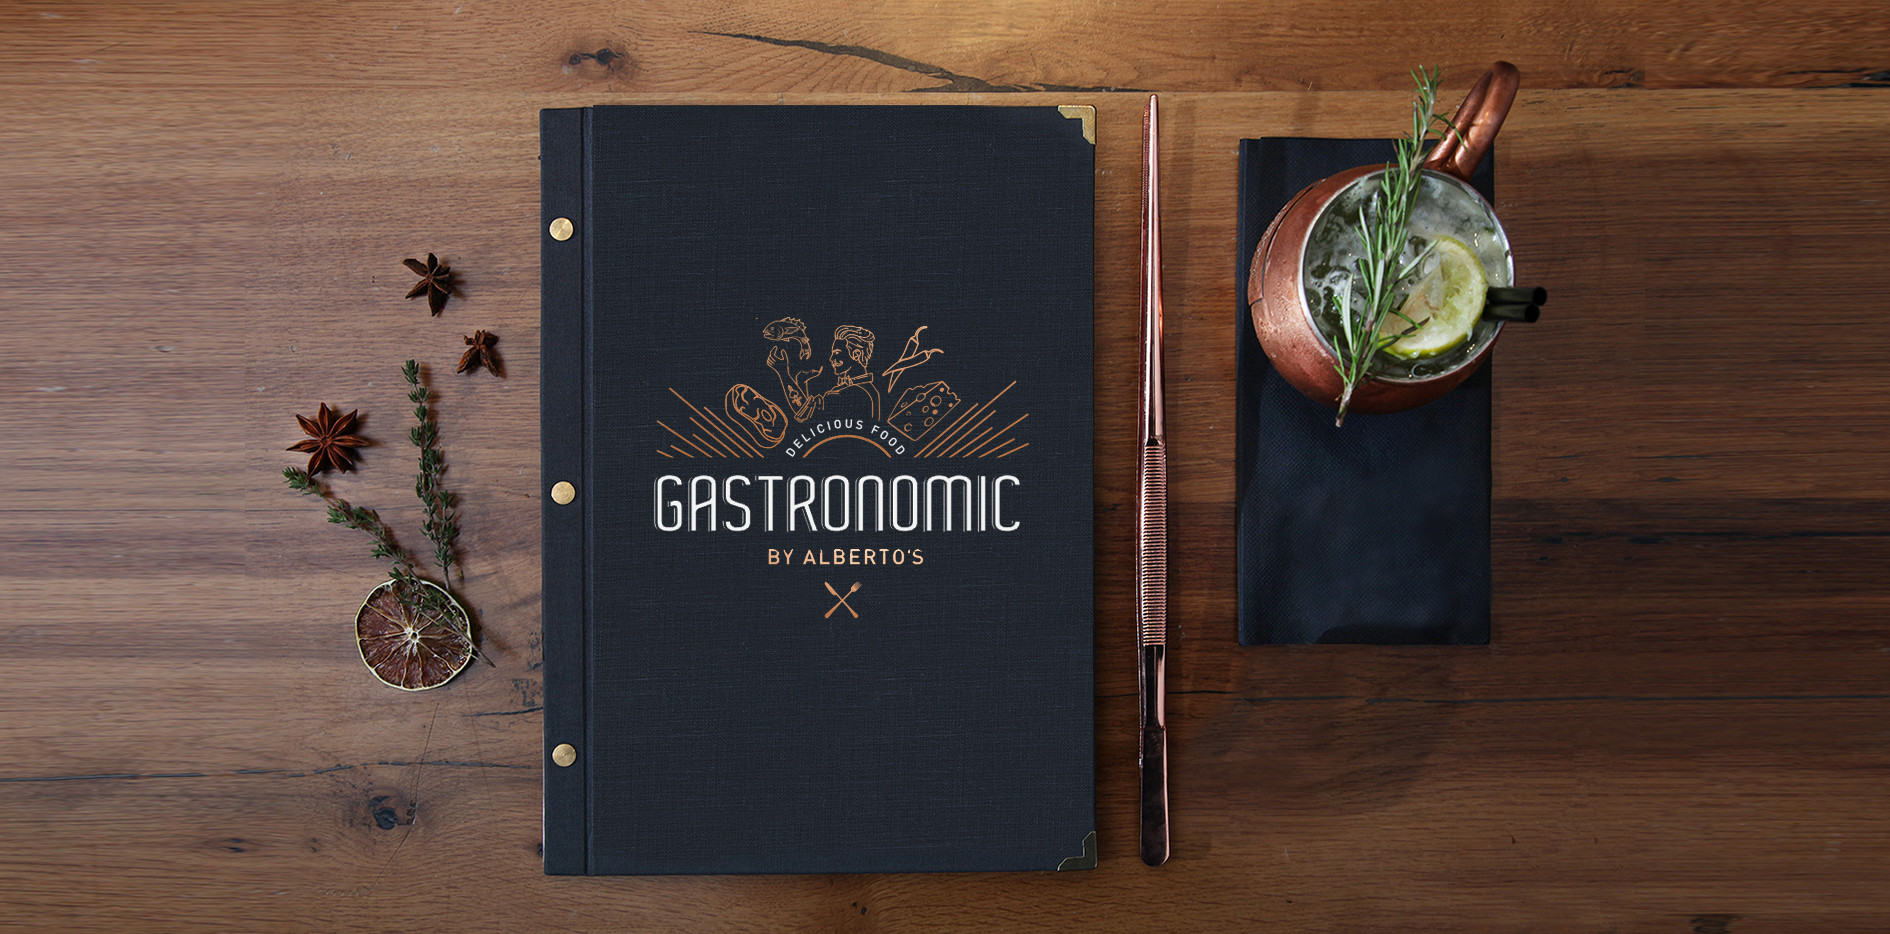 Gastronomic | Food culture